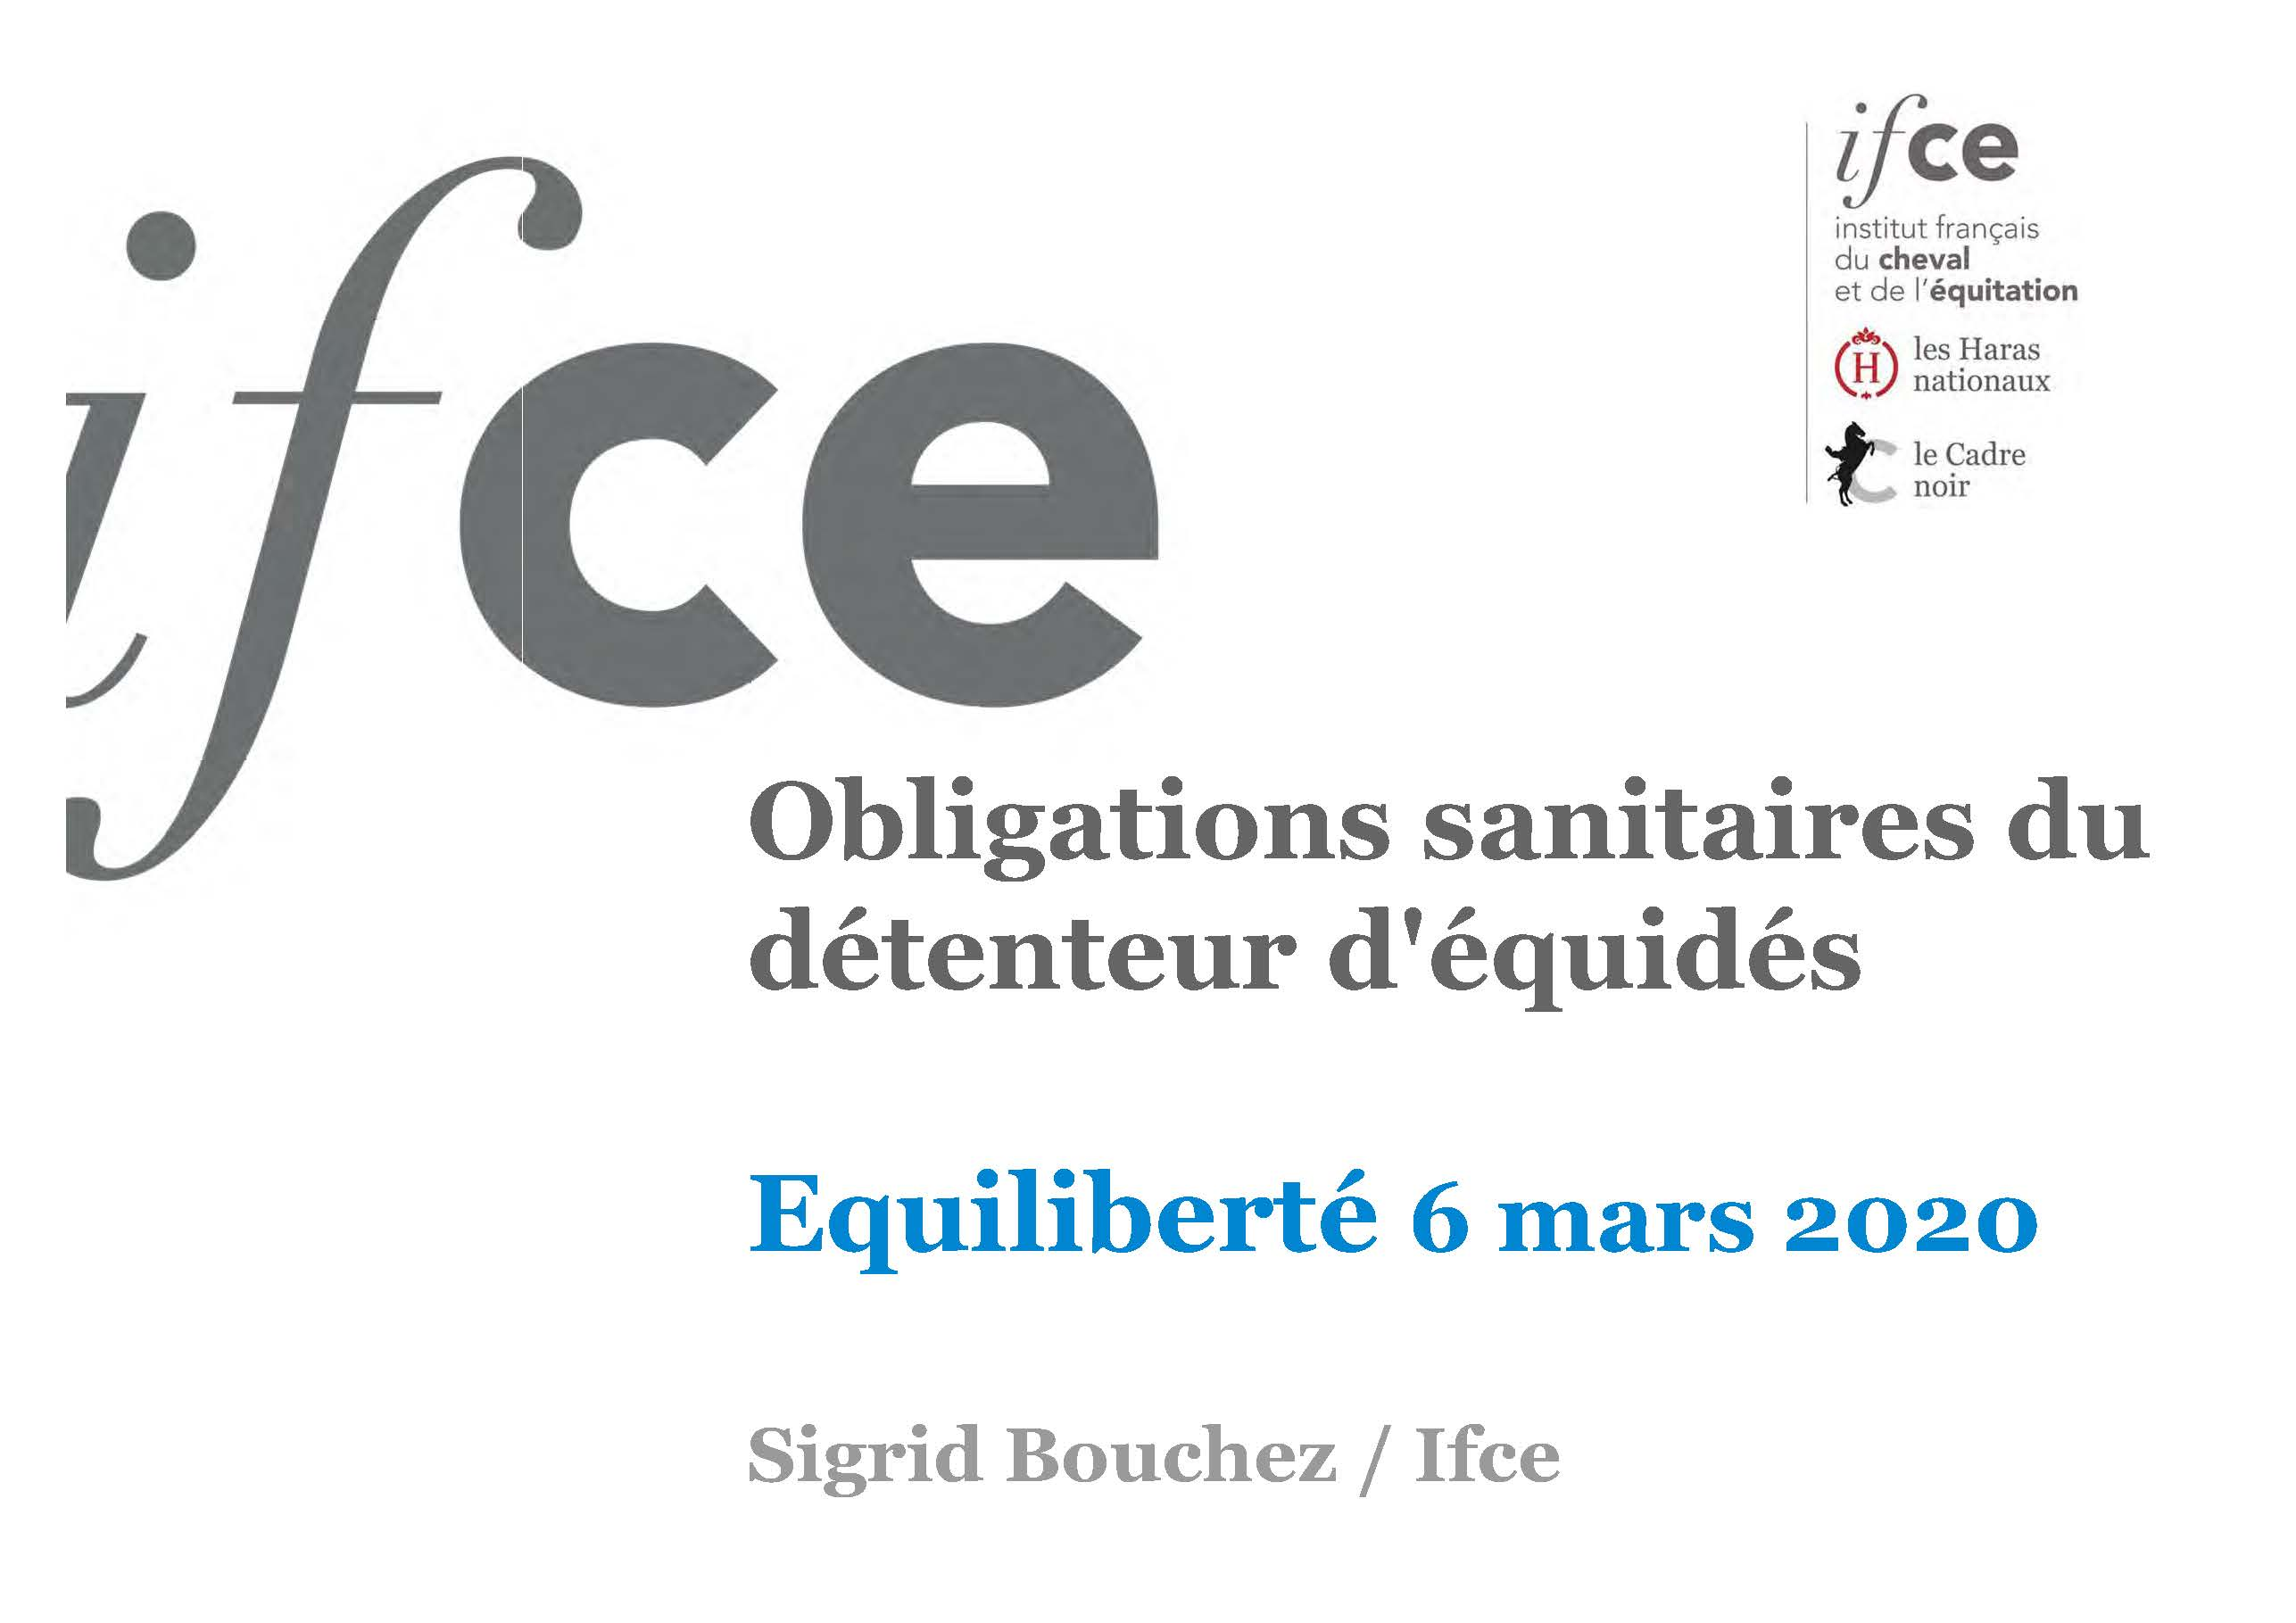 demarches sanitaires equide Equiliberte